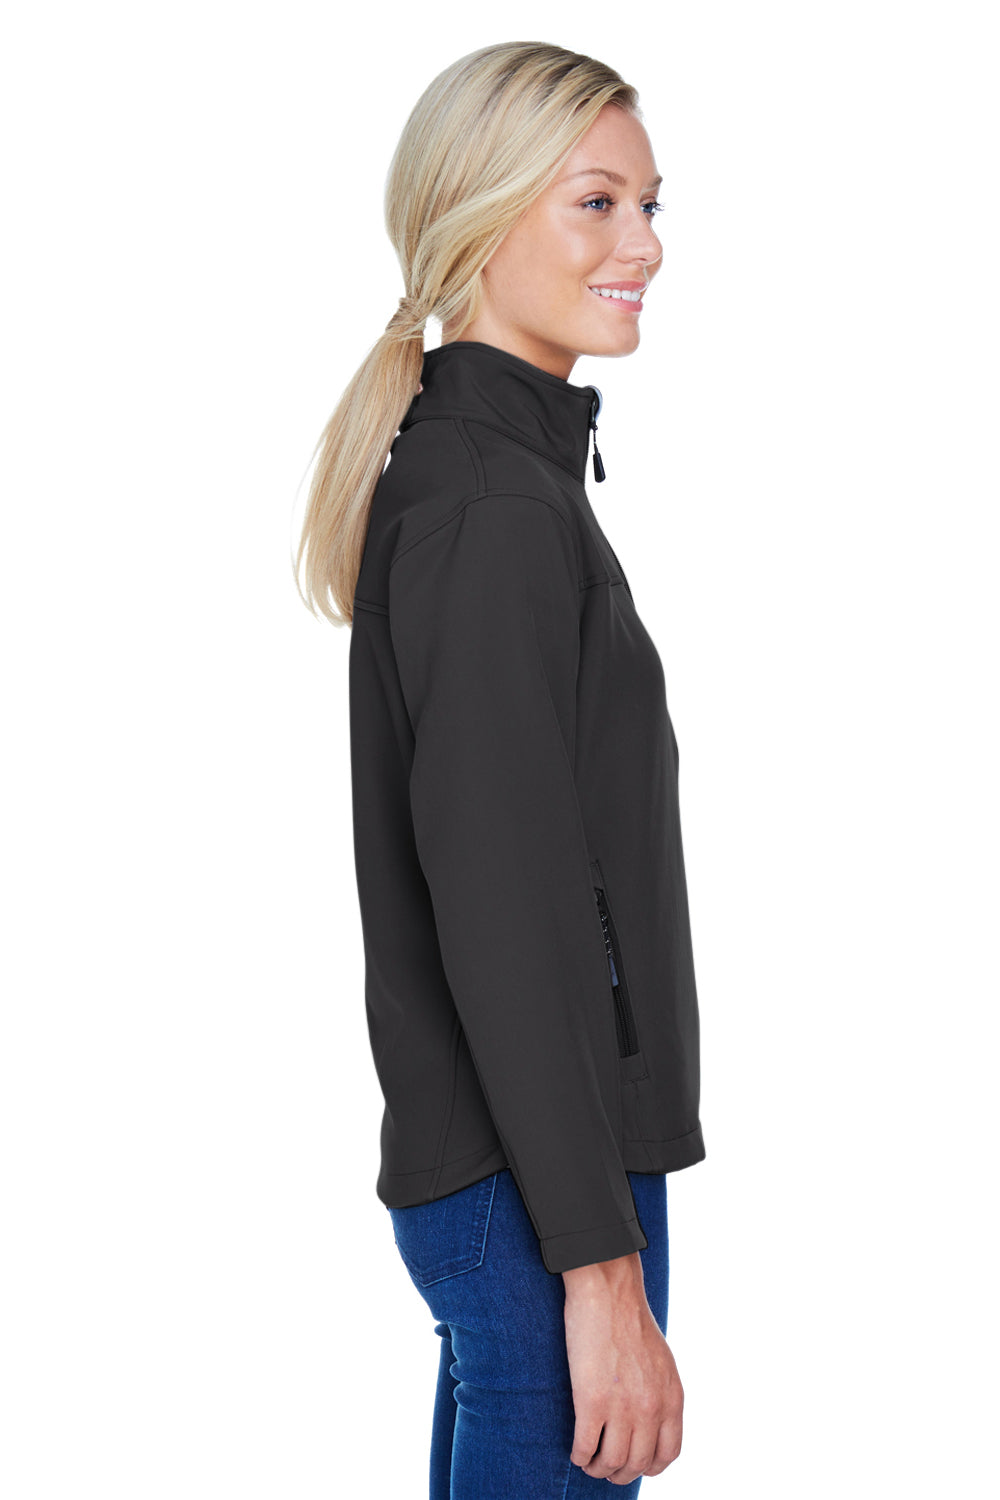 Devon & Jones D995W Womens Wind & Water Resistant Full Zip Jacket Black Side